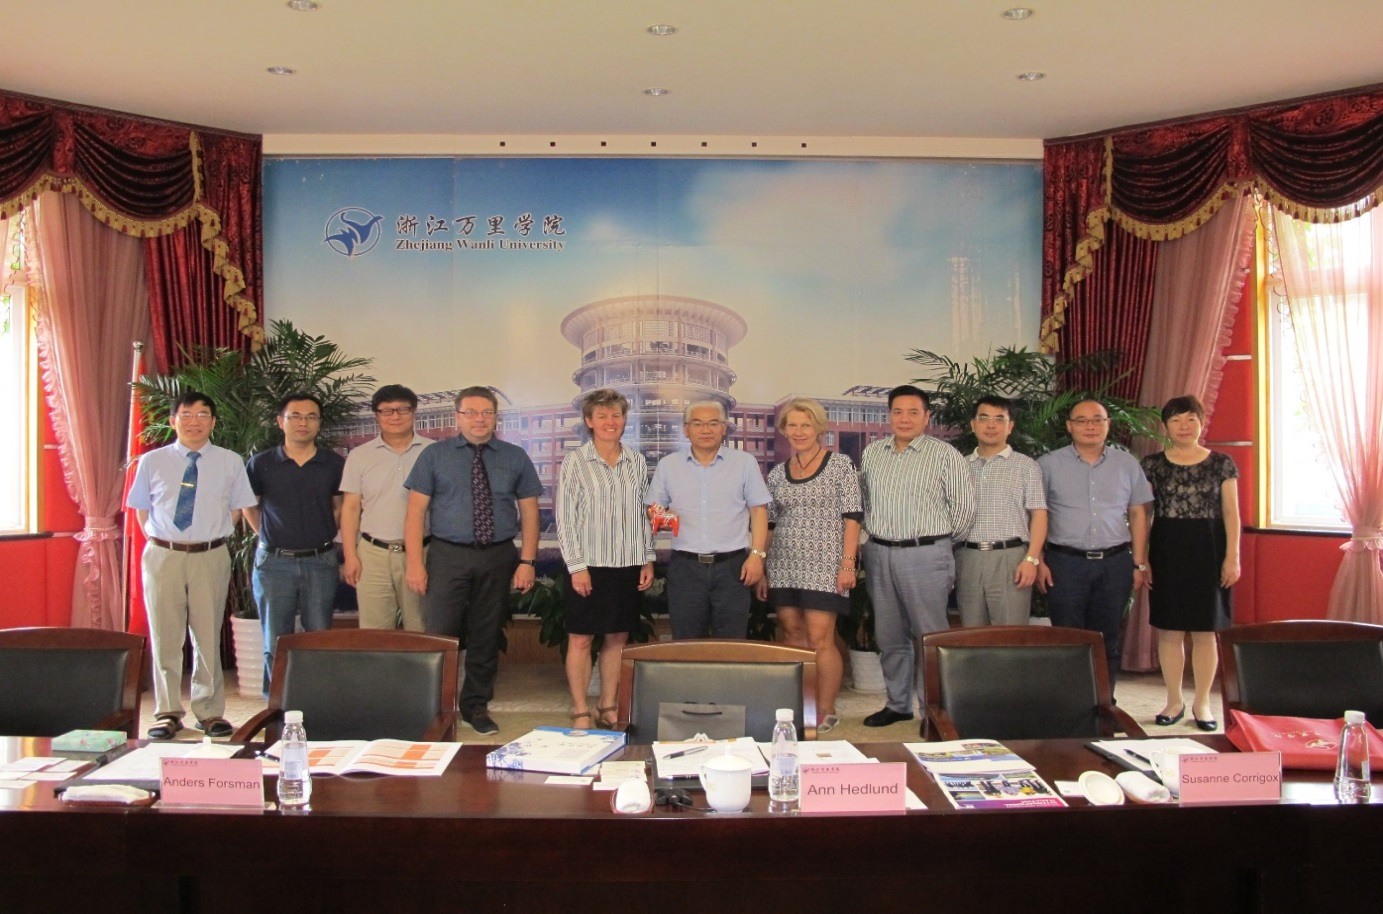 Representatives from Dalarna University in China